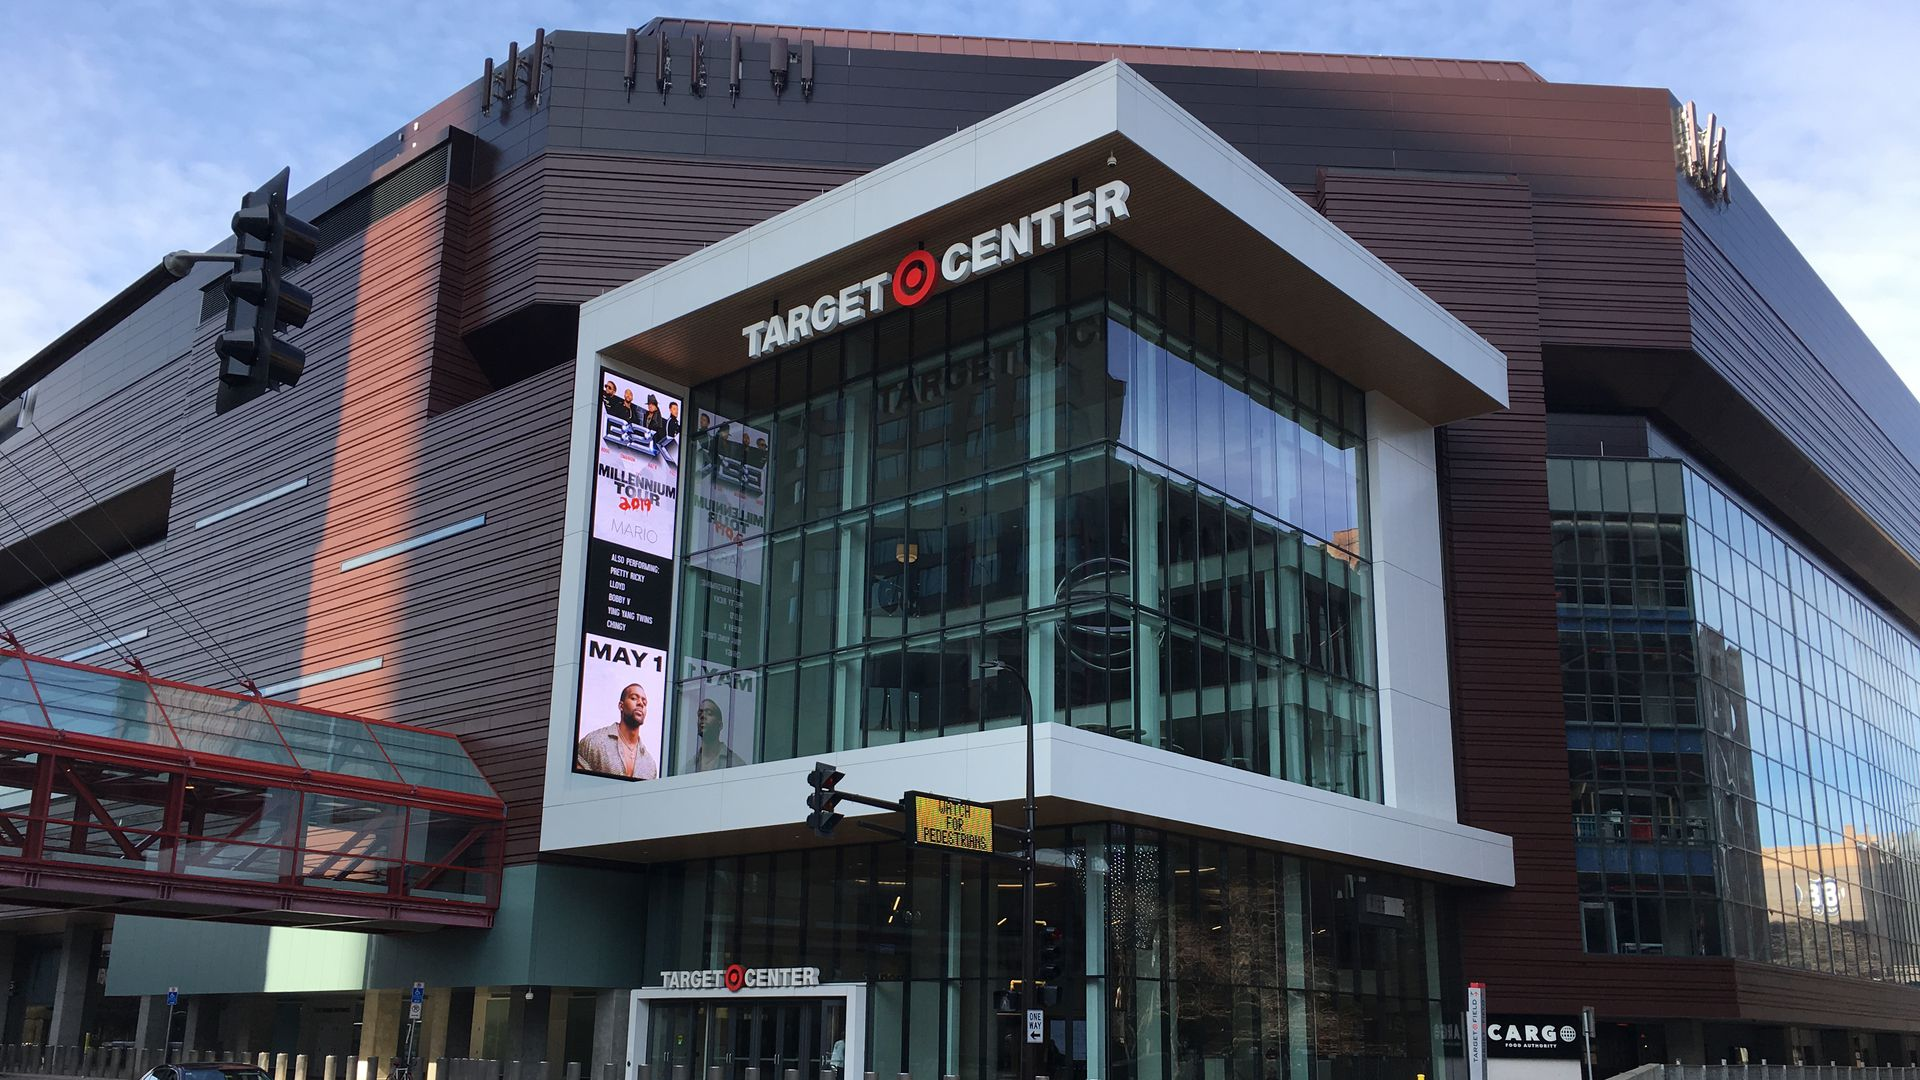 The exterior of Target Center with its big glass entrance